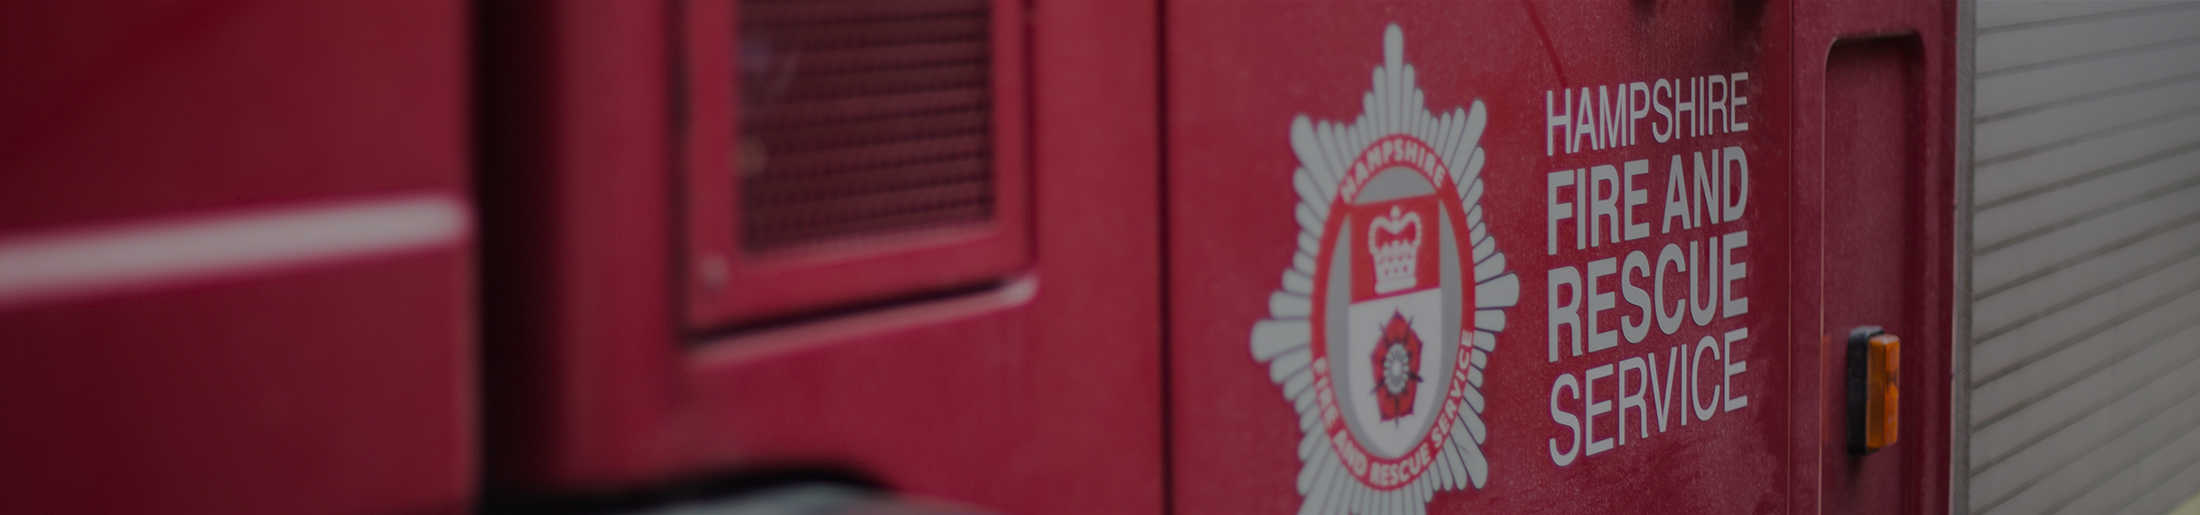 Hampshire Firefighters are Safer with Integrated MOTOTRBO Communications System